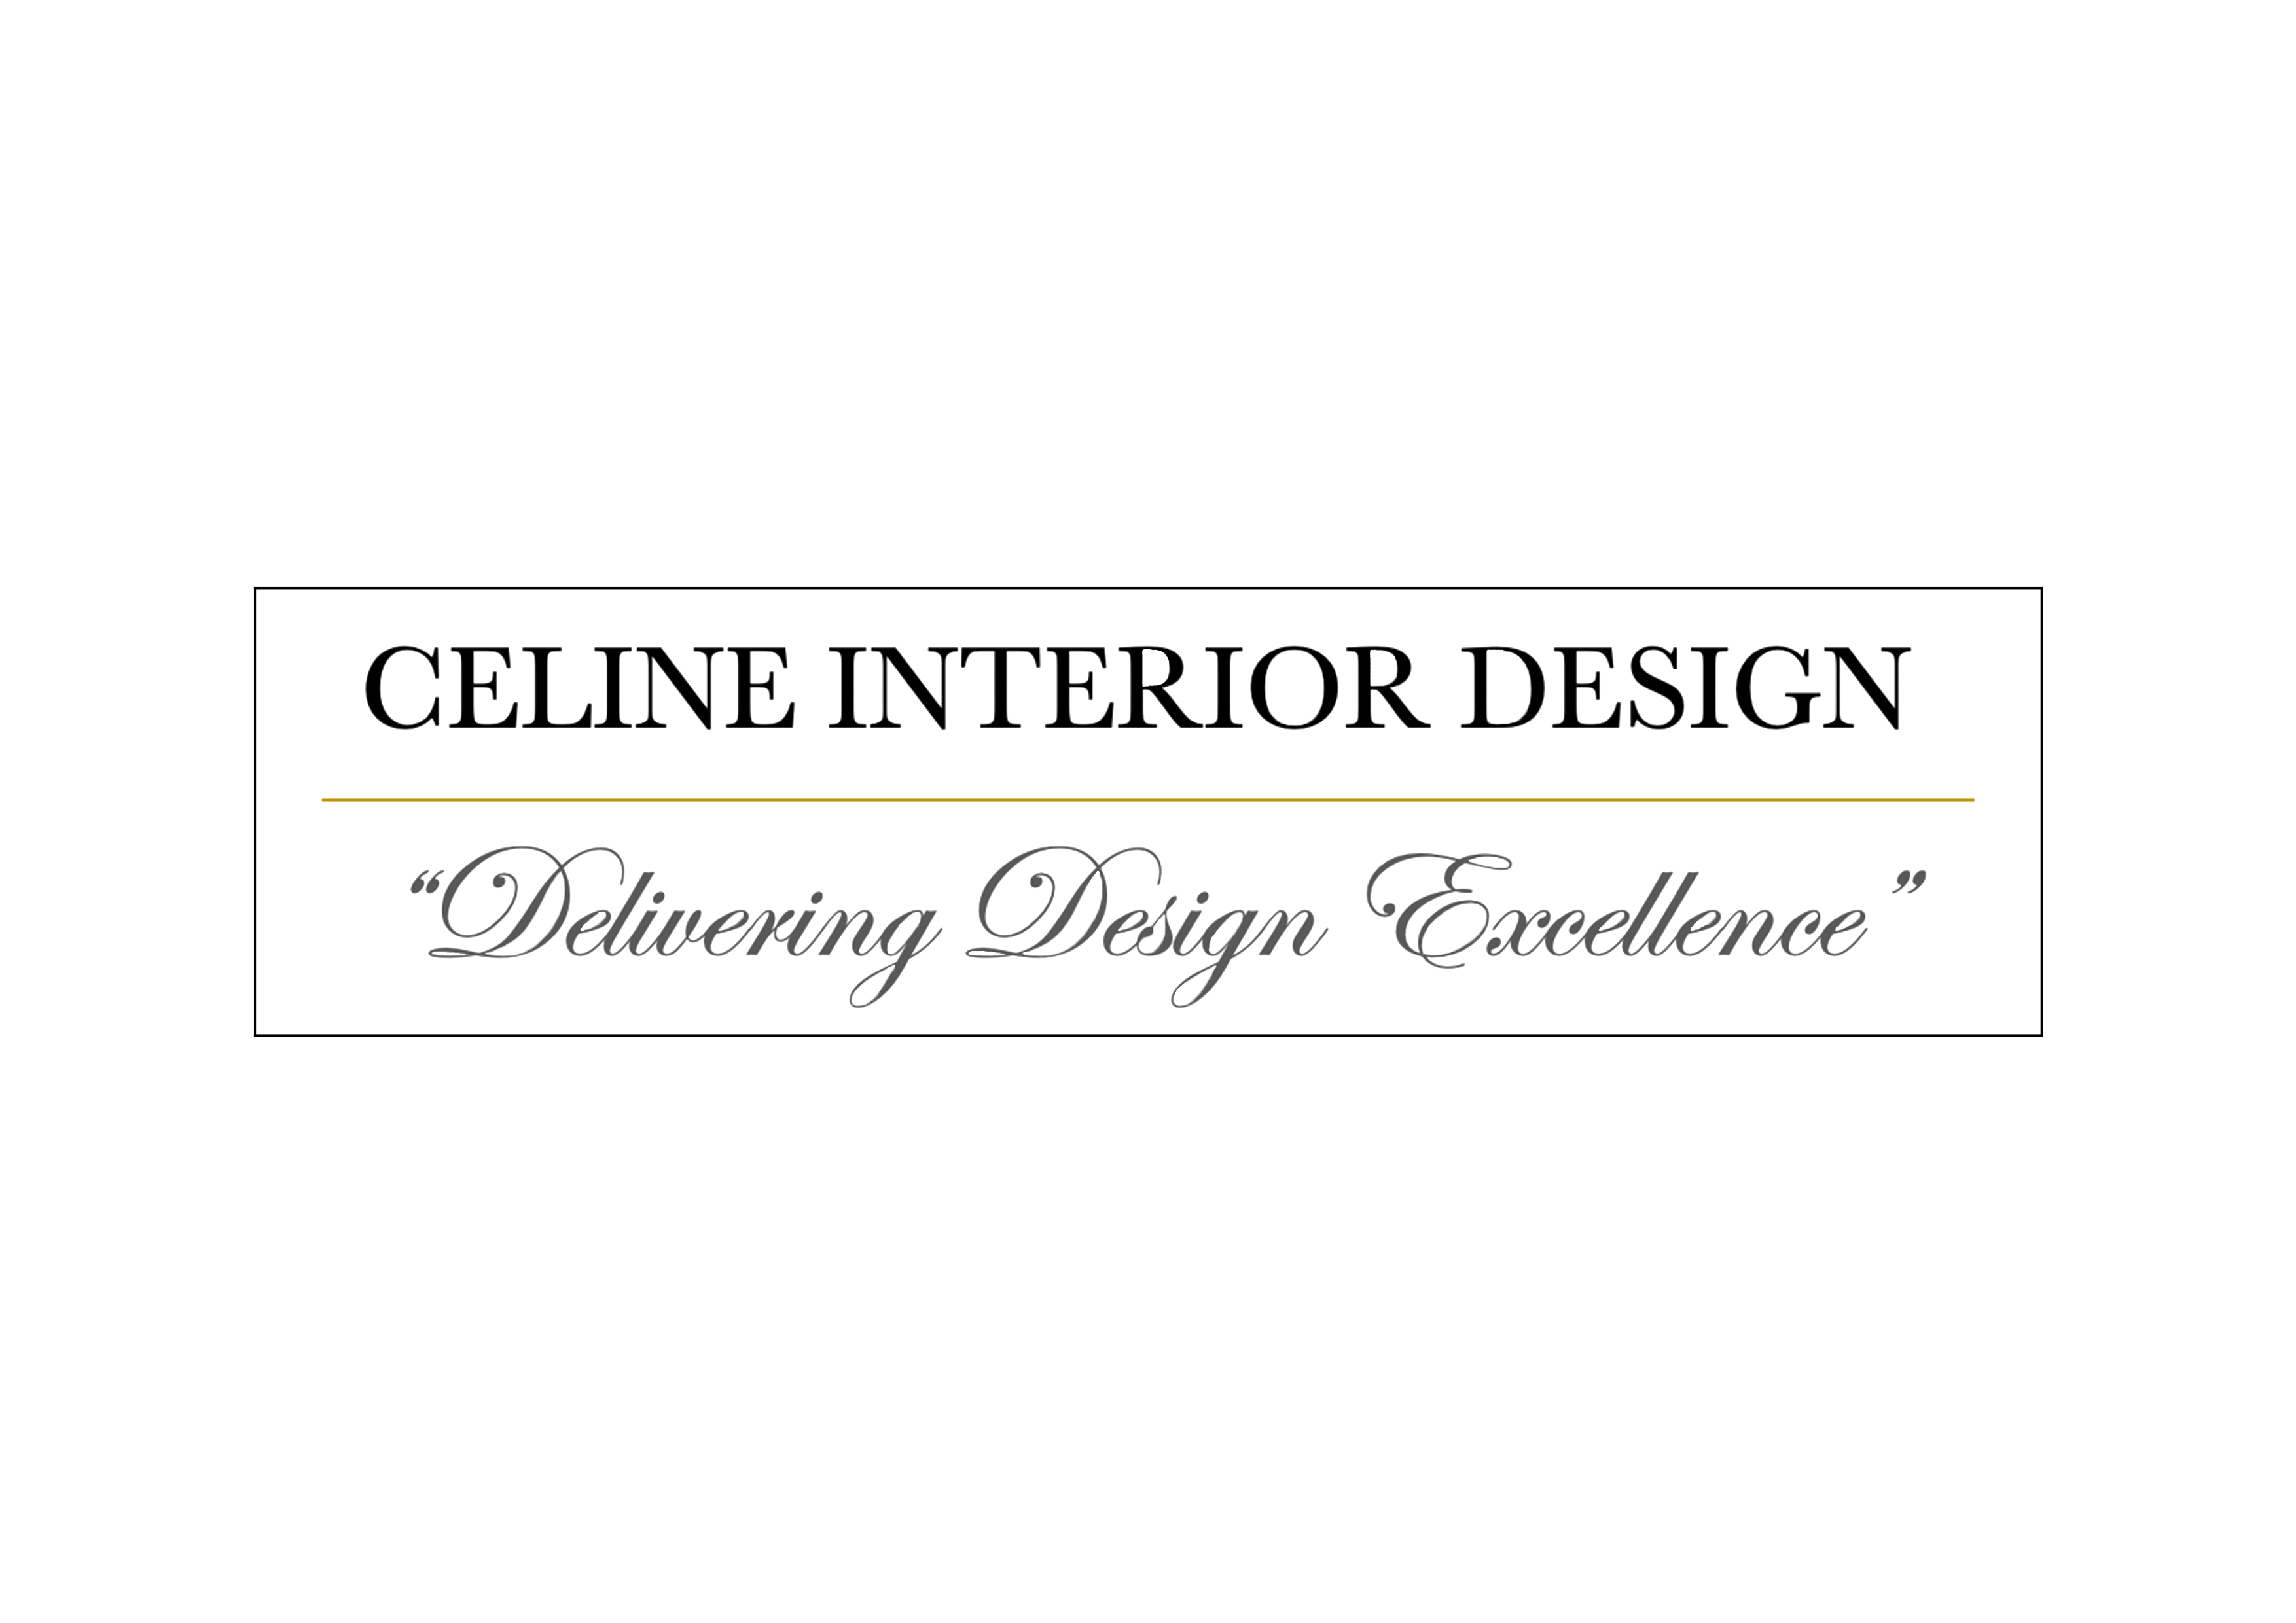 Celine Interior Design